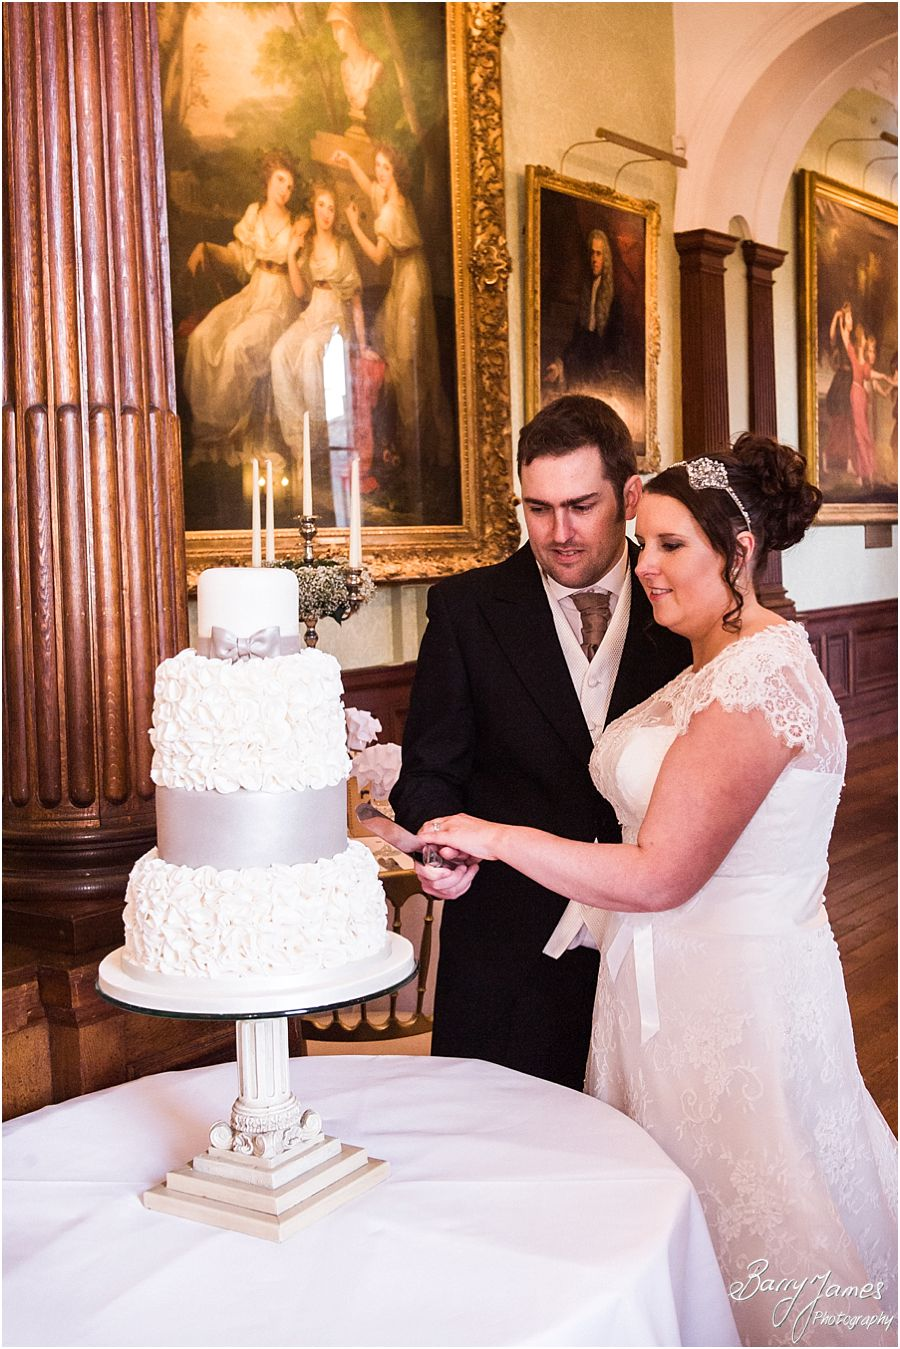 Beautiful wedding cake by Amerton Cakes for wedding at Sandon Hall in Stafford by Staffordshire Wedding Photographer Barry James